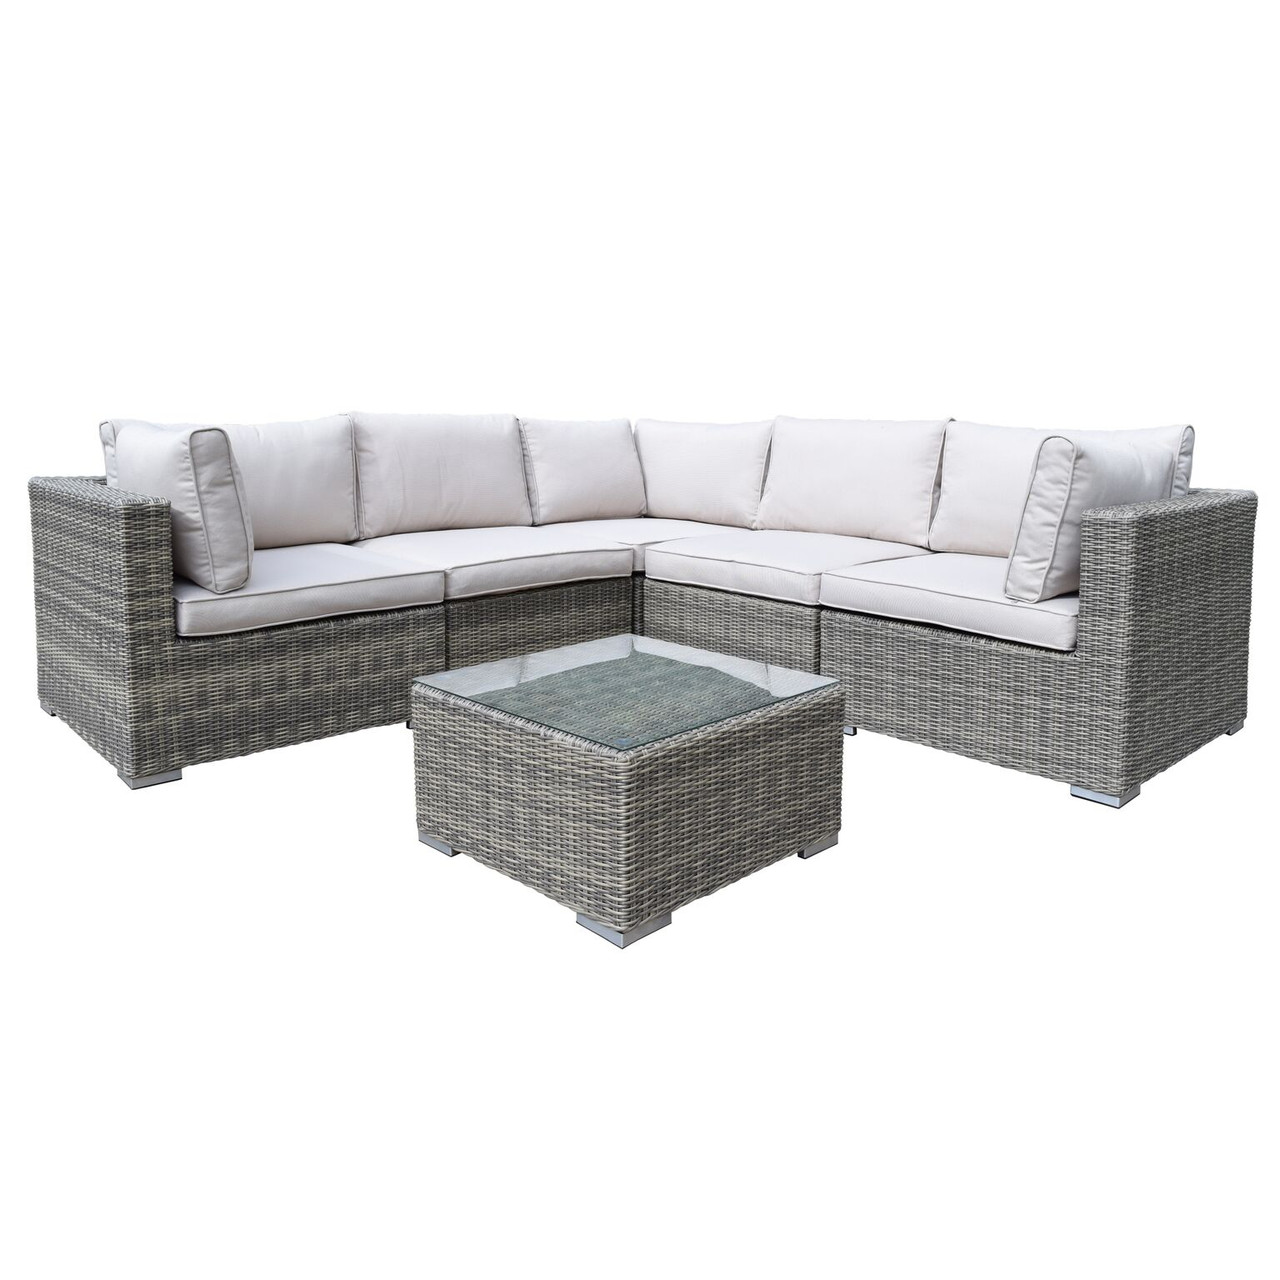 6 Piece Brown Borneo All Weather Resin Wicker Modular Sectional Set W Gray Cushions Christmas Central